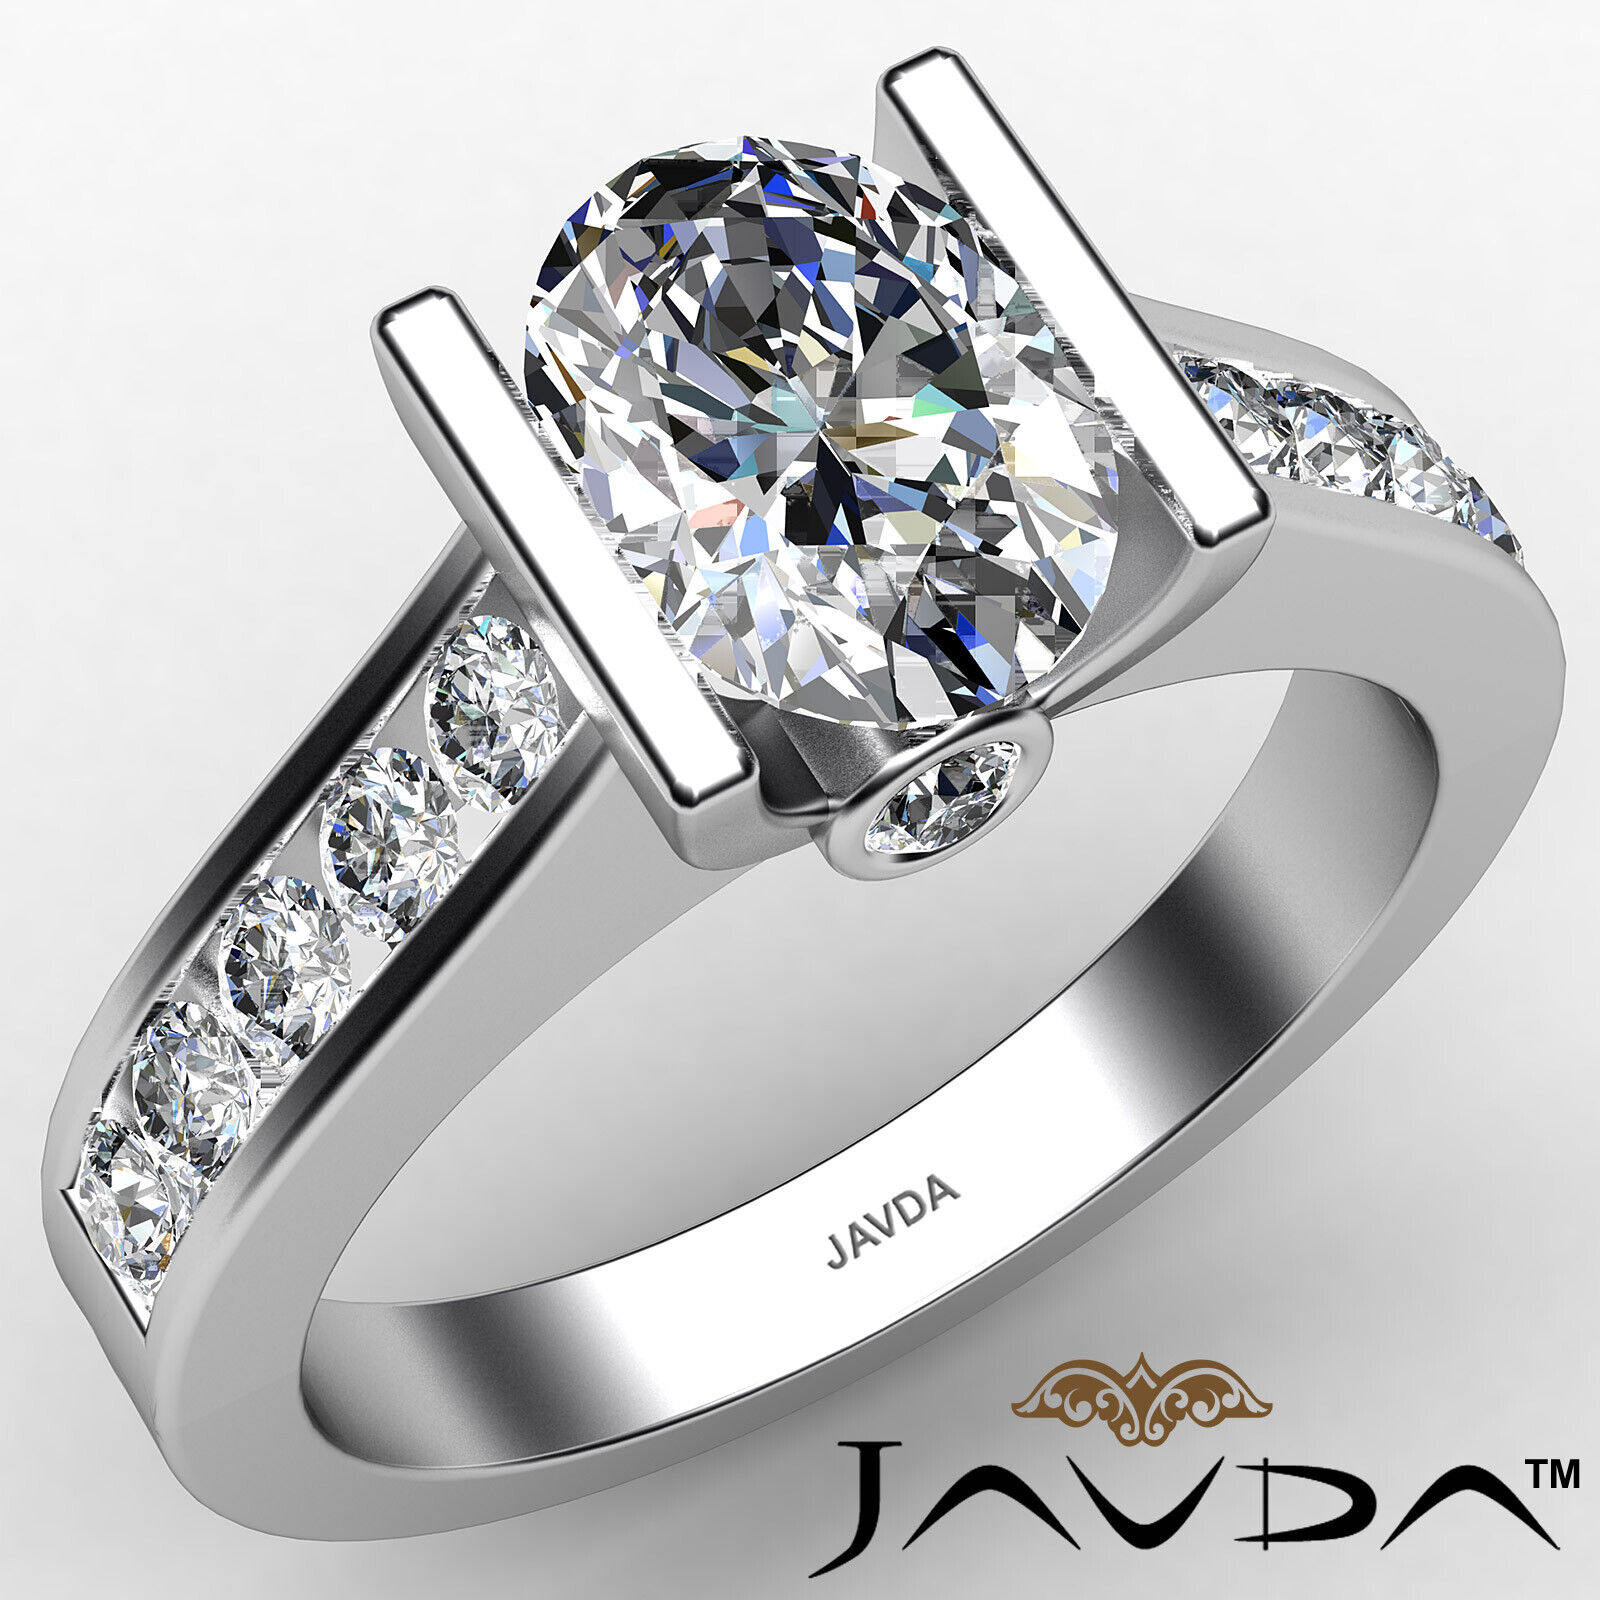 Oval Diamond Engagement Bezel Setting Ring GIA, E Color & SI2 clarity 1.4 ctw.